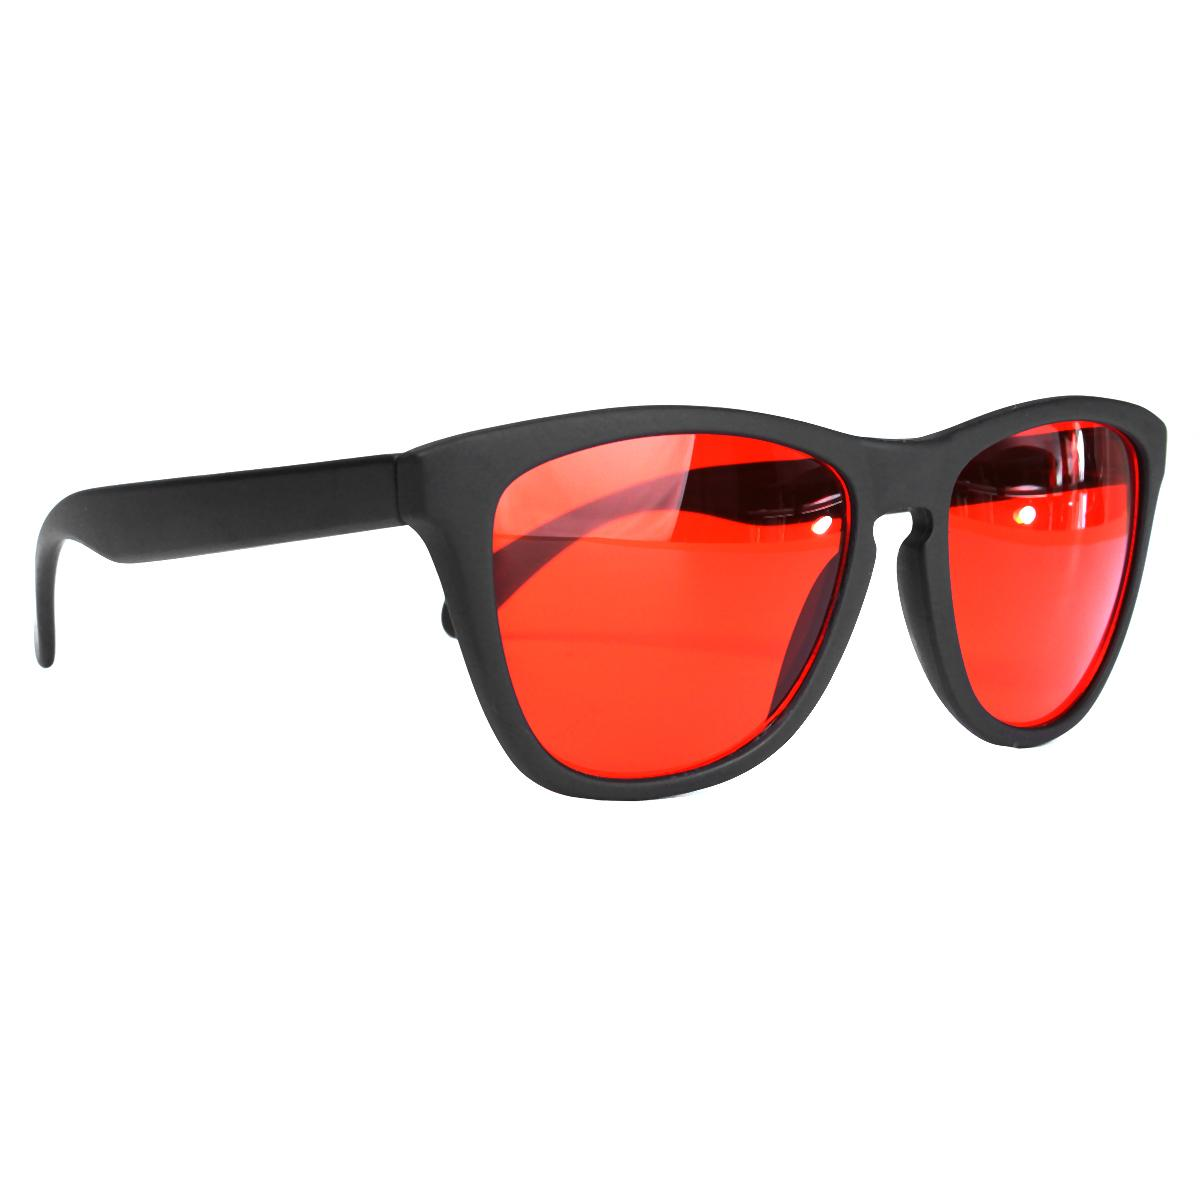 Clearance Sale】Colorblindness Corrective Glasses + Box For Red Green Color  Blind Vision Care: Buy Online at Best Prices in Pakistan   Daraz.pk